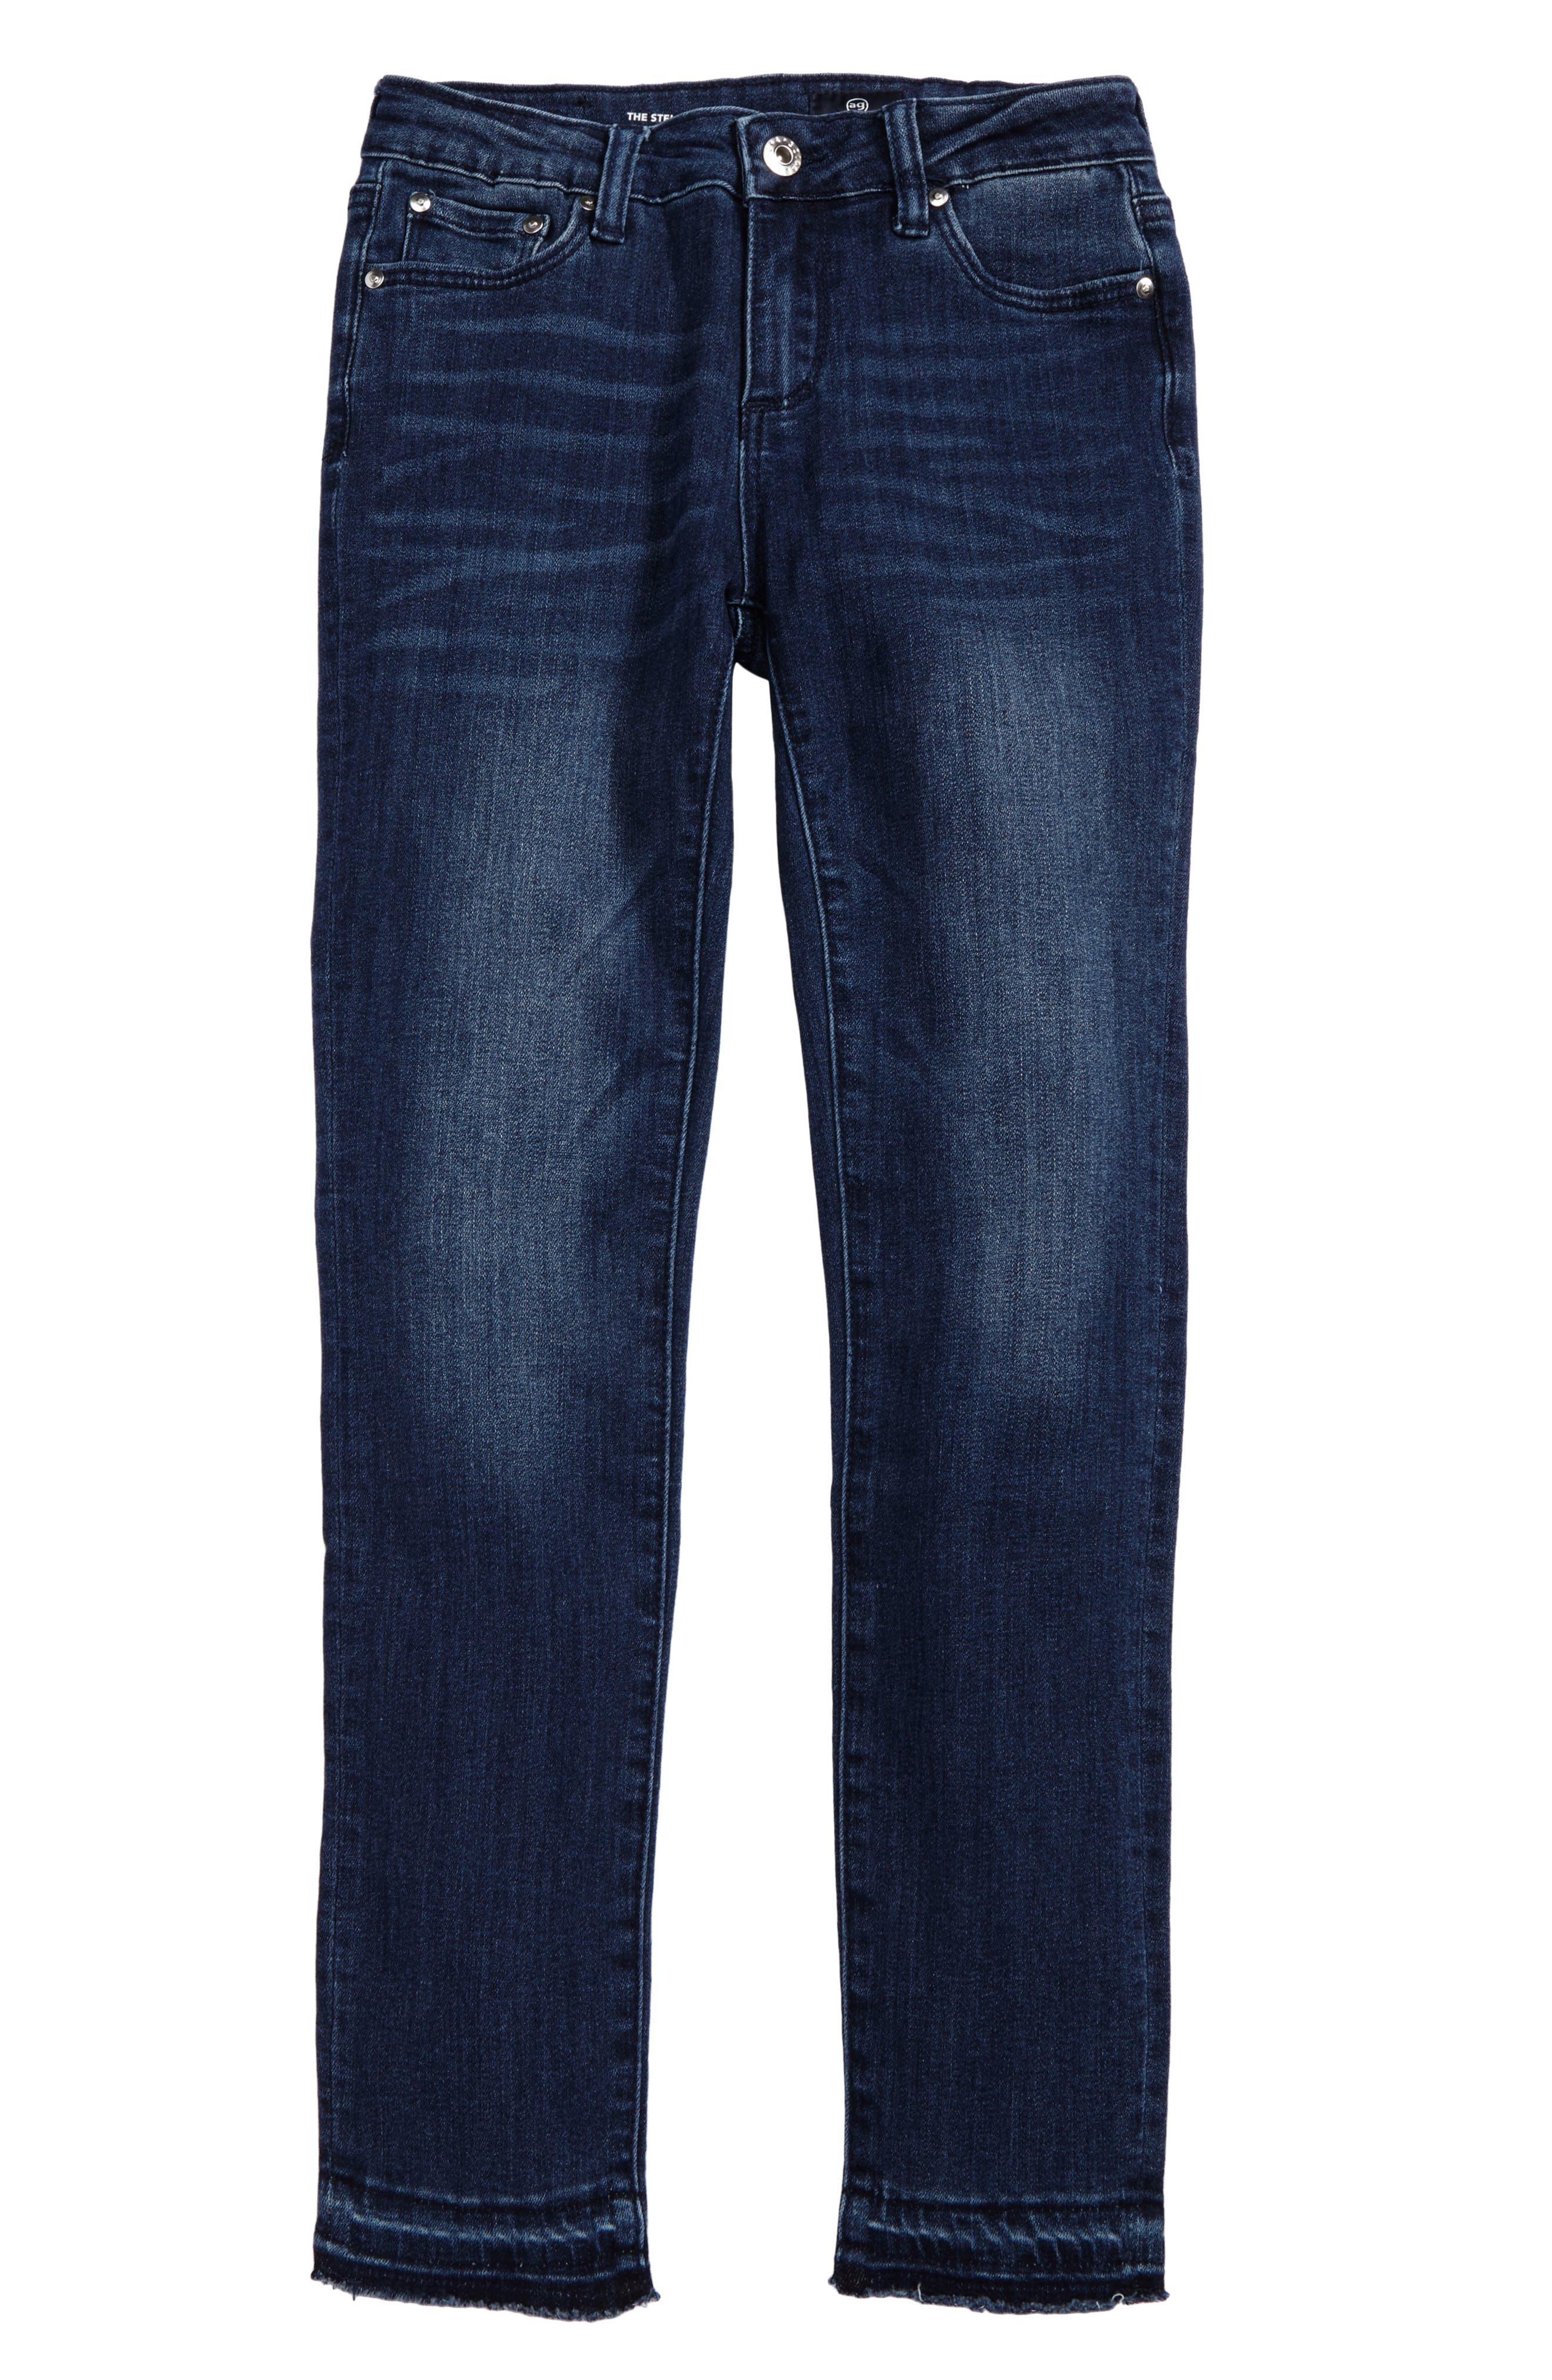 Alternate Image 1 Selected - ag adriano goldschmied kids The Stella Skinny Jeans (Big Girls)